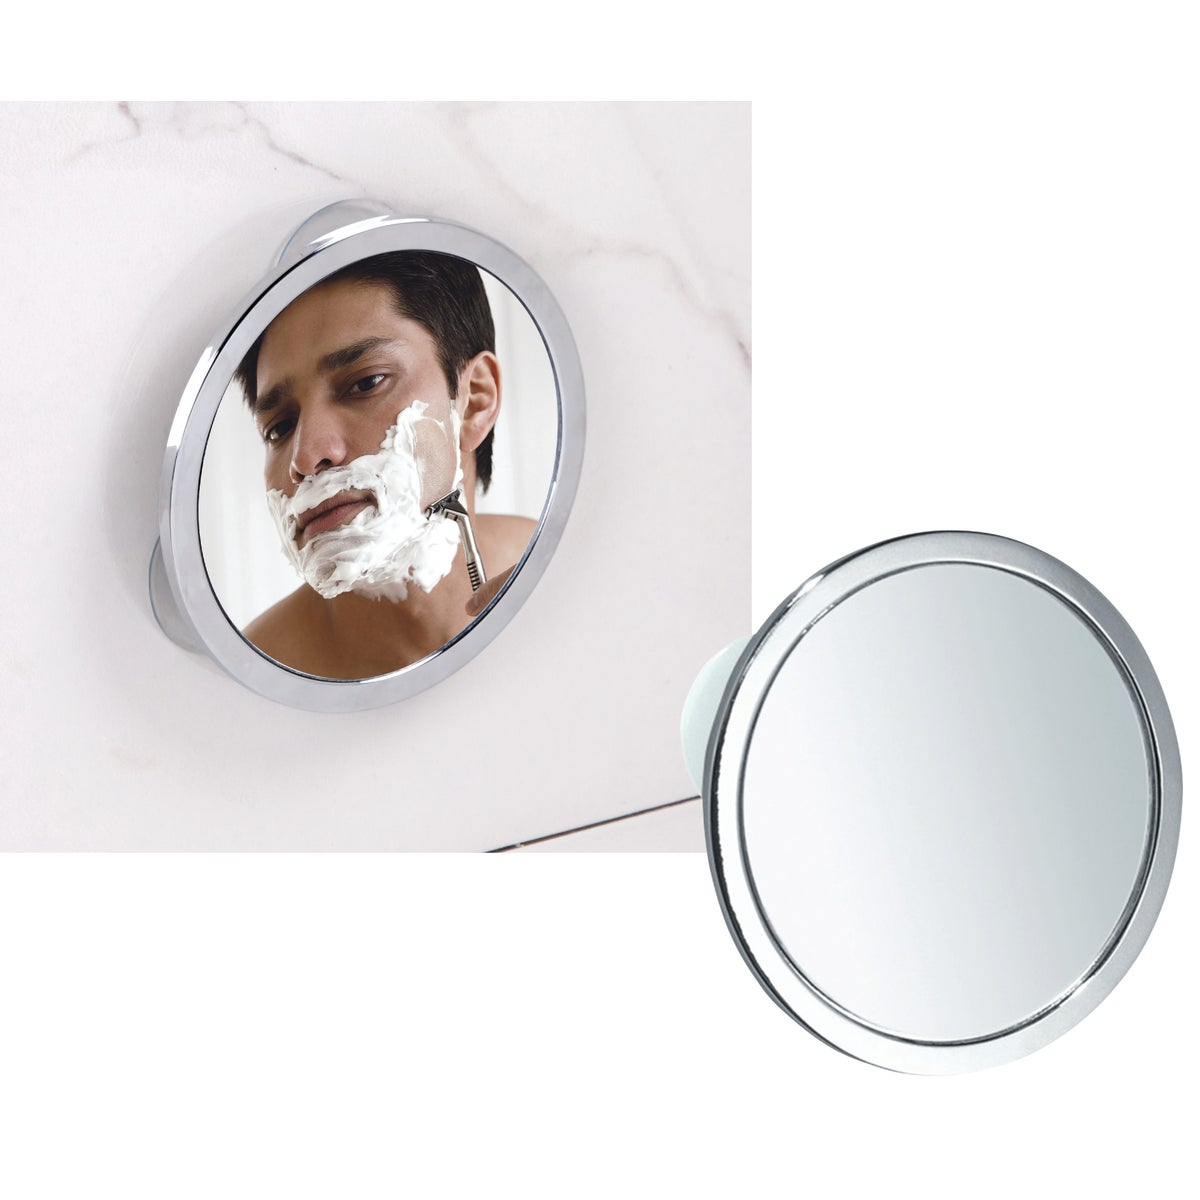 SS FOG-FREE MIRROR - 67102 by Interdesign Inc